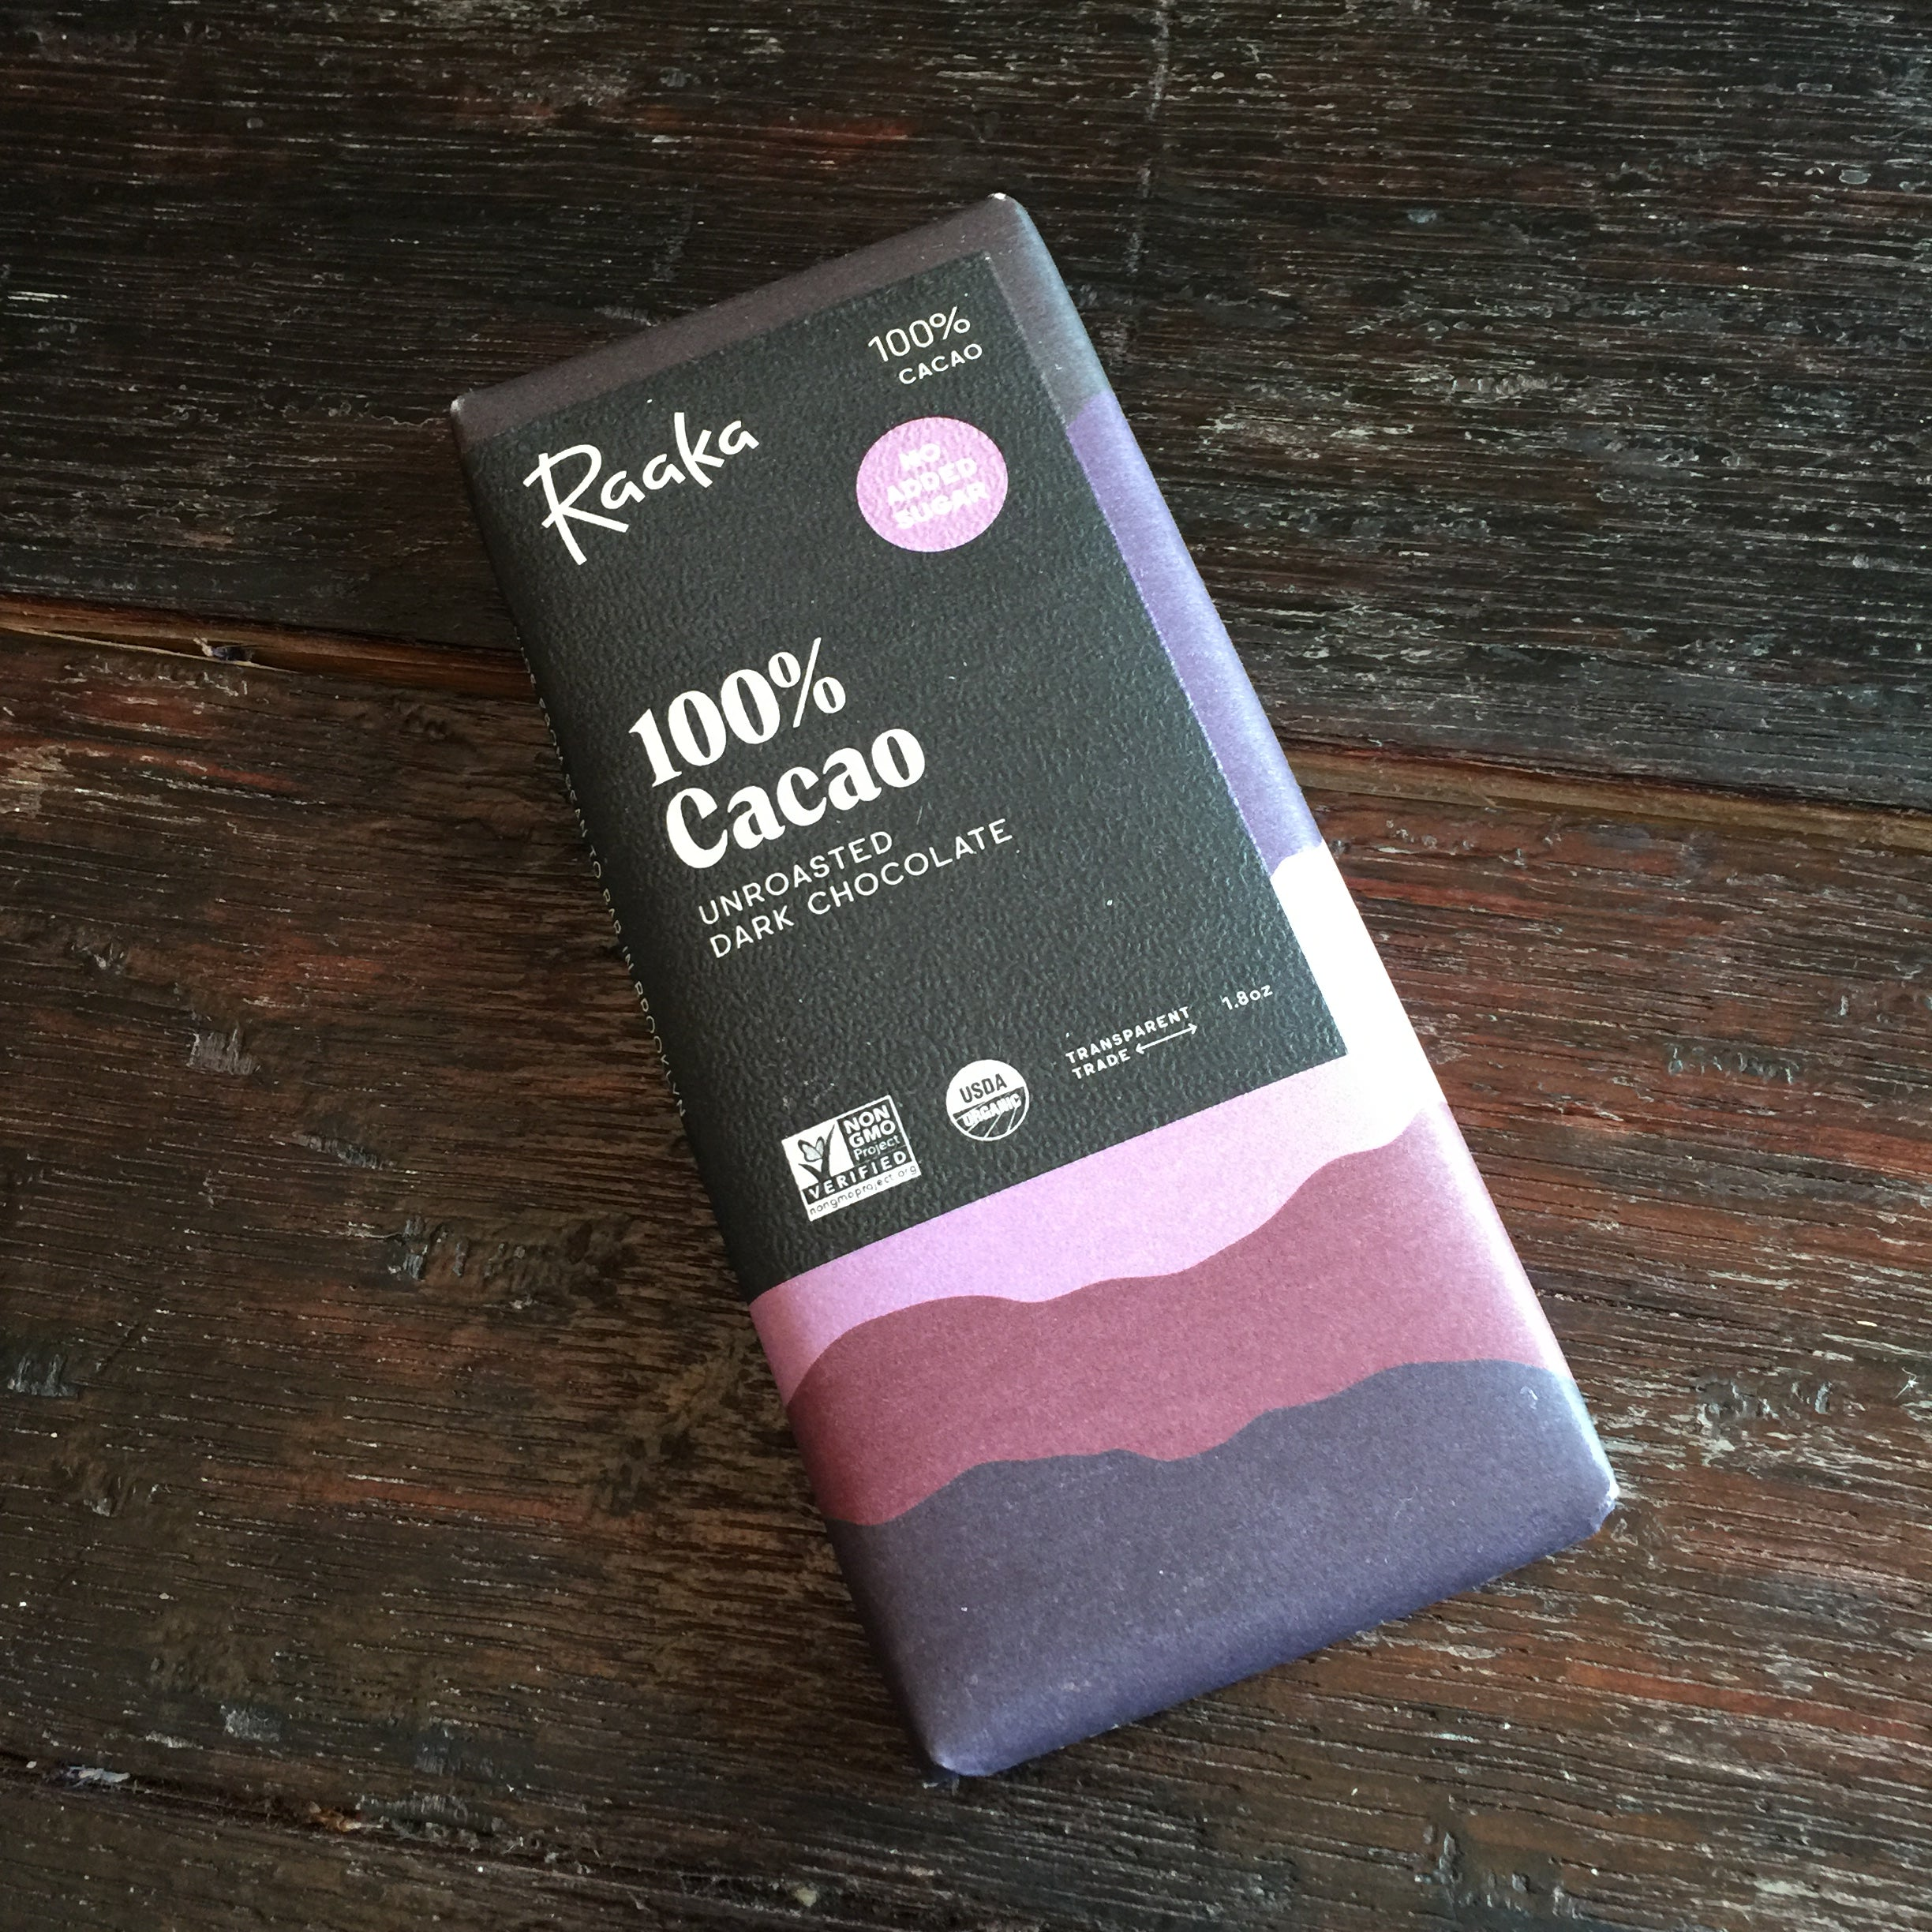 Raaka 100% Cacao Unroasted Dark Chocolate Bar